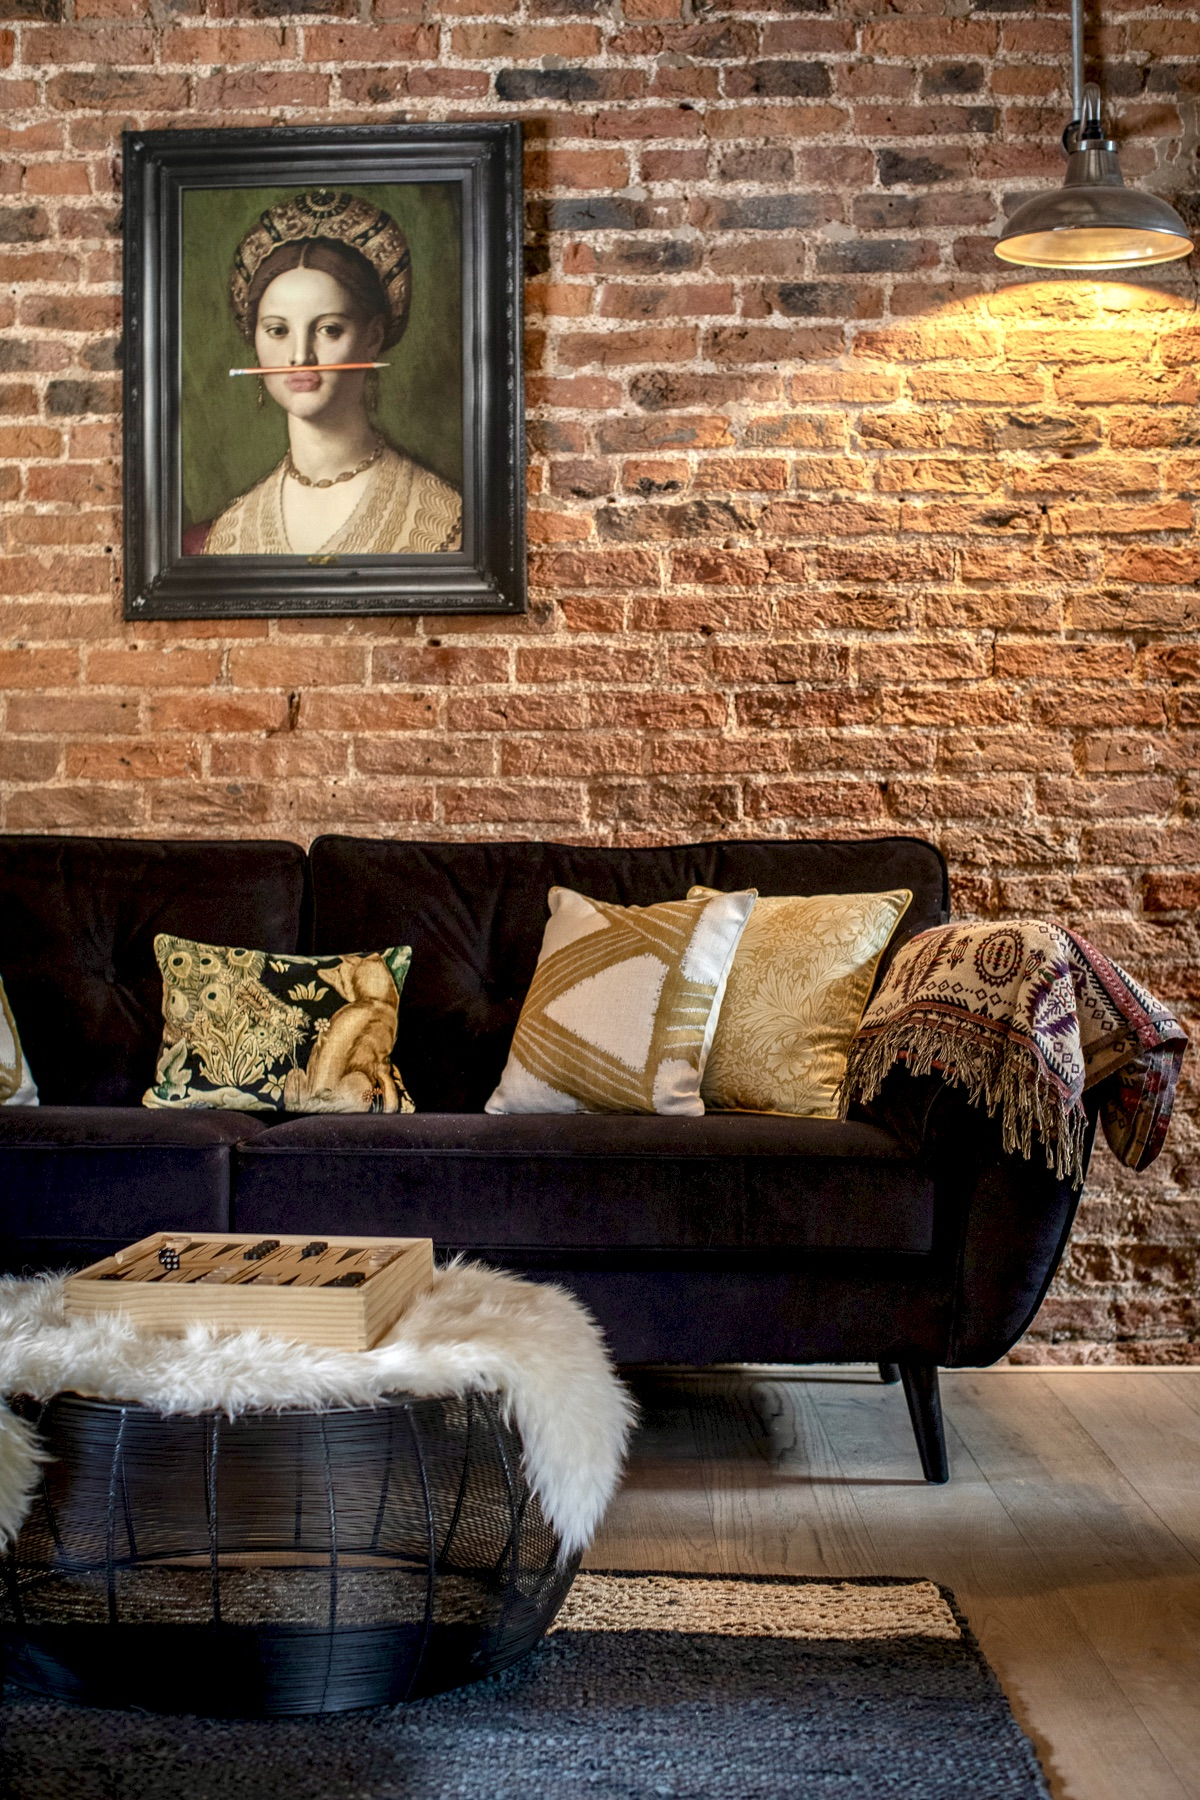 Exposed Brick at The Old Forge